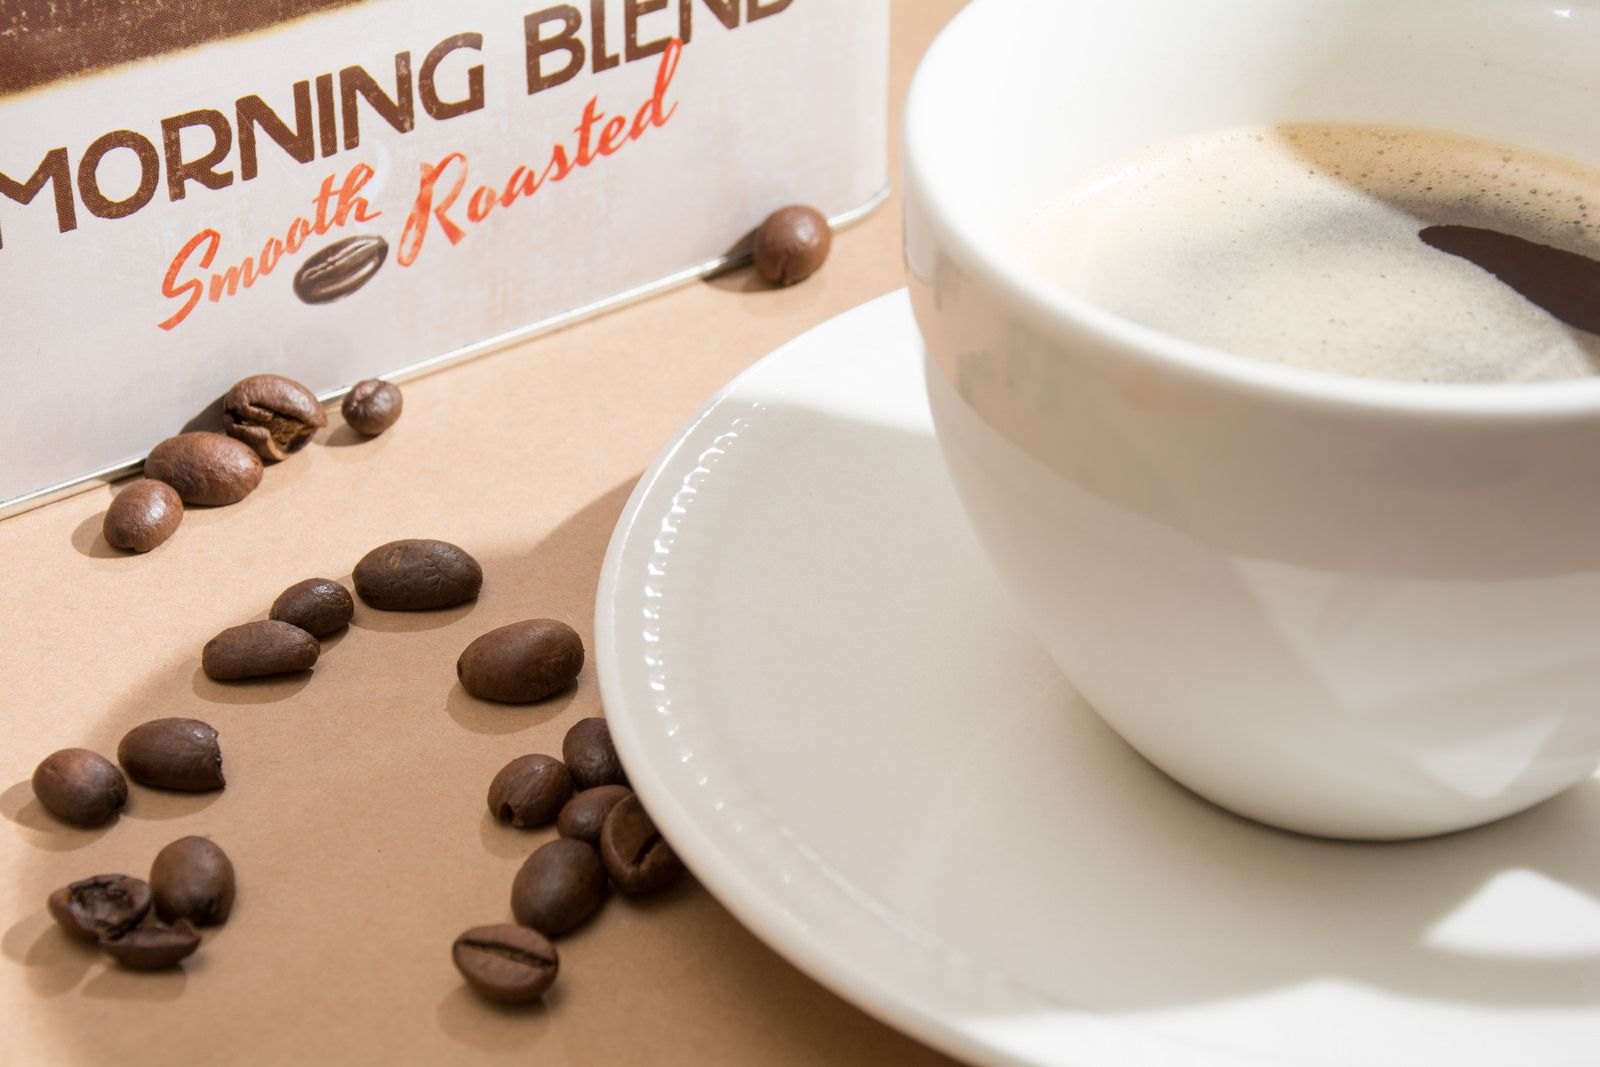 Morning Blend, yummy